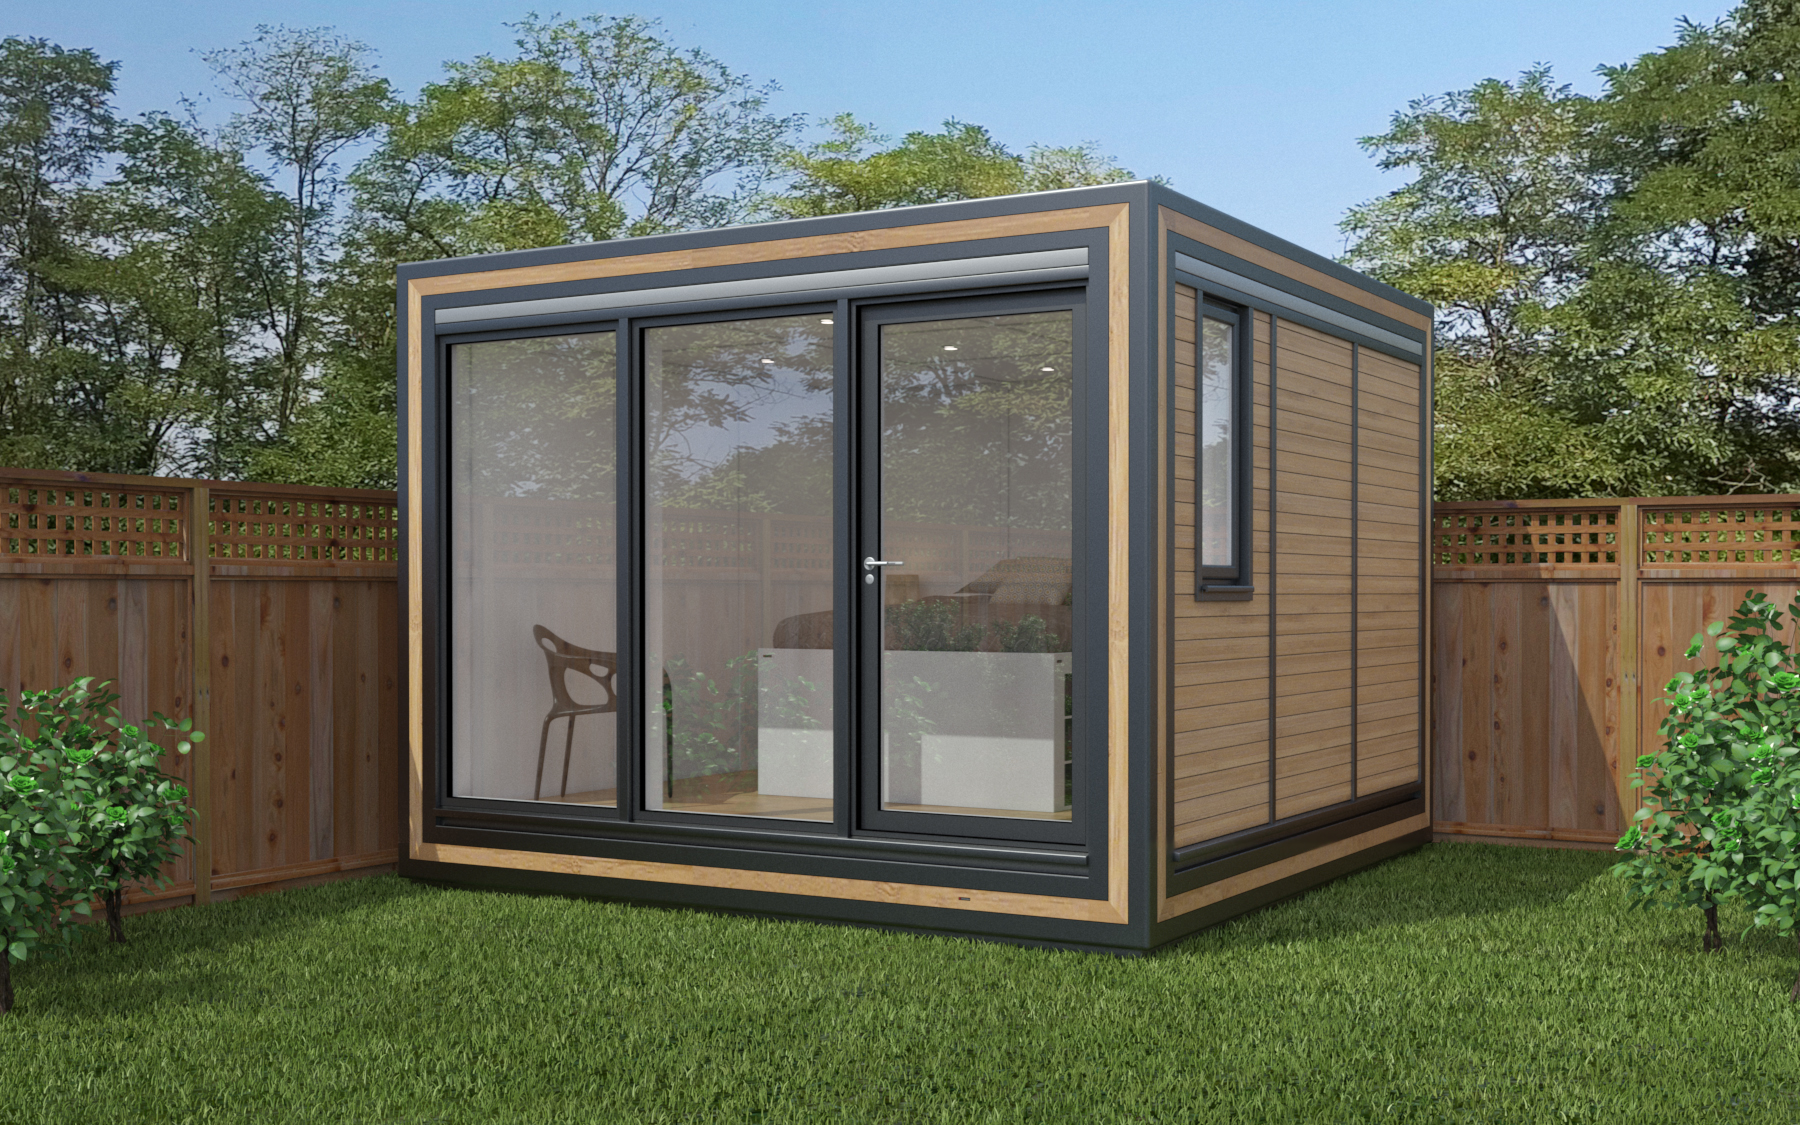 ZEDBOX 330  (3 x 3)  Internal Size: 2188 x 3188  External Size: 3658 x 3658  Bed Options: Single  Kitchen Options: Micro Kitchen  Wet Room Options: Yes  Portico: No  Price:  £21,000    Optional Extras    Request Zedbox Catalogue